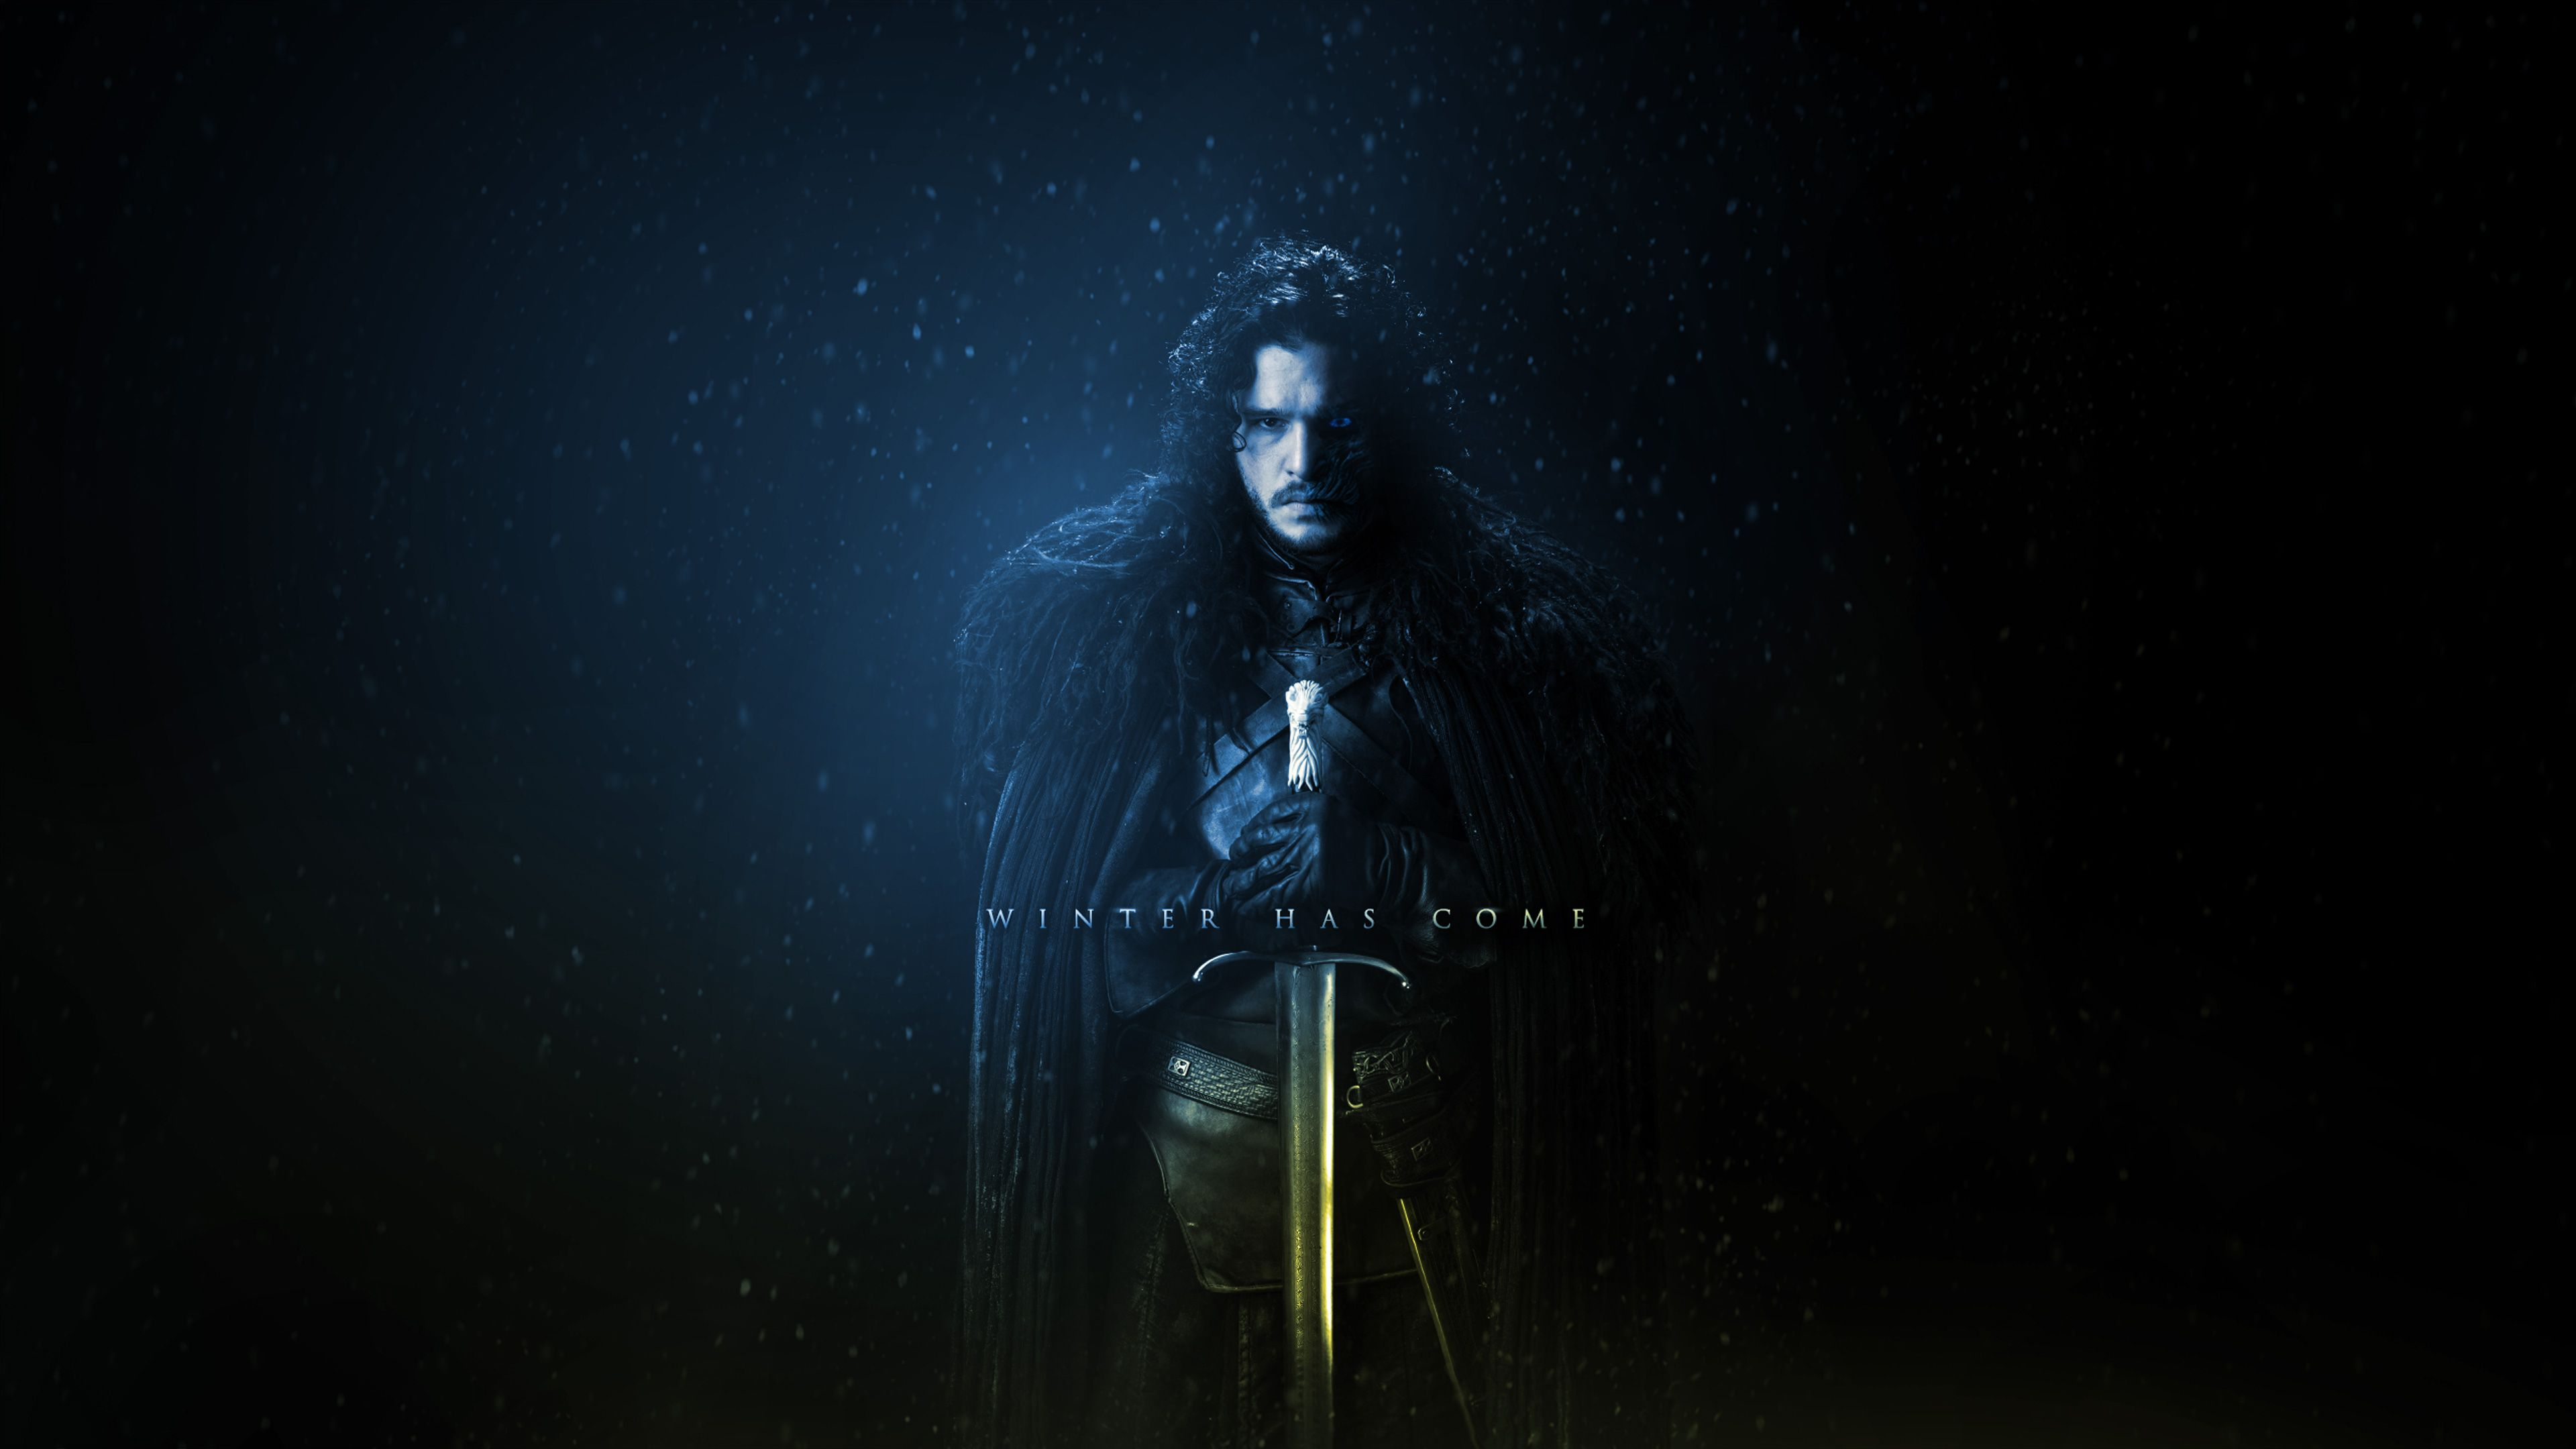 Game Of Thrones Season 7 Jon Snow Wallpaper 4K